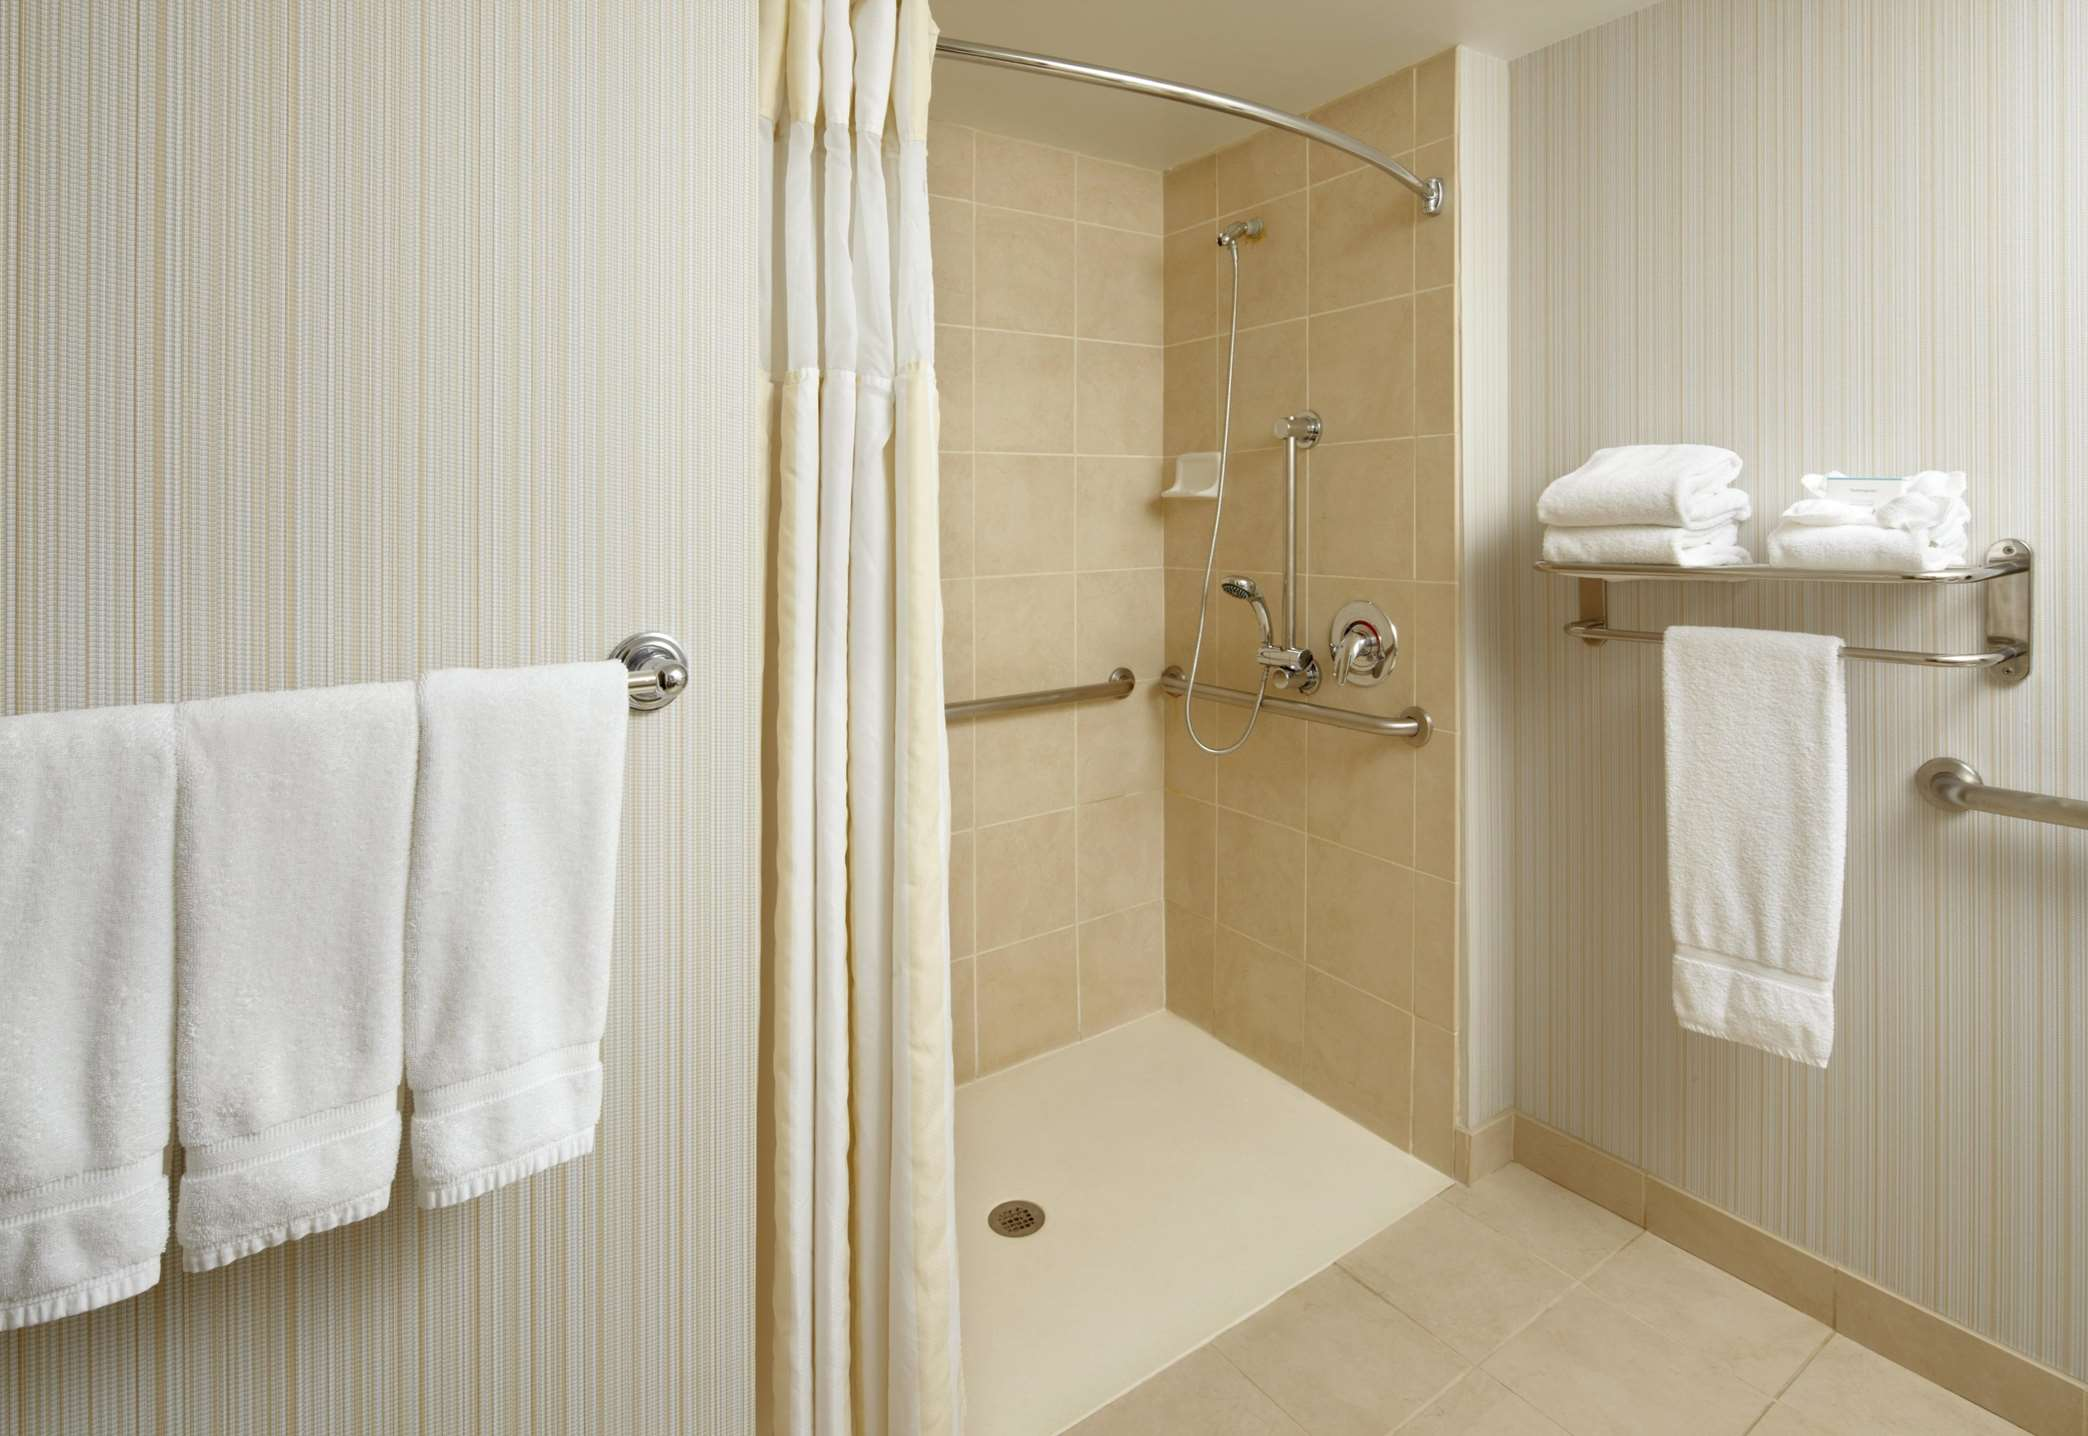 Hilton Garden Inn Dallas/Arlington image 36